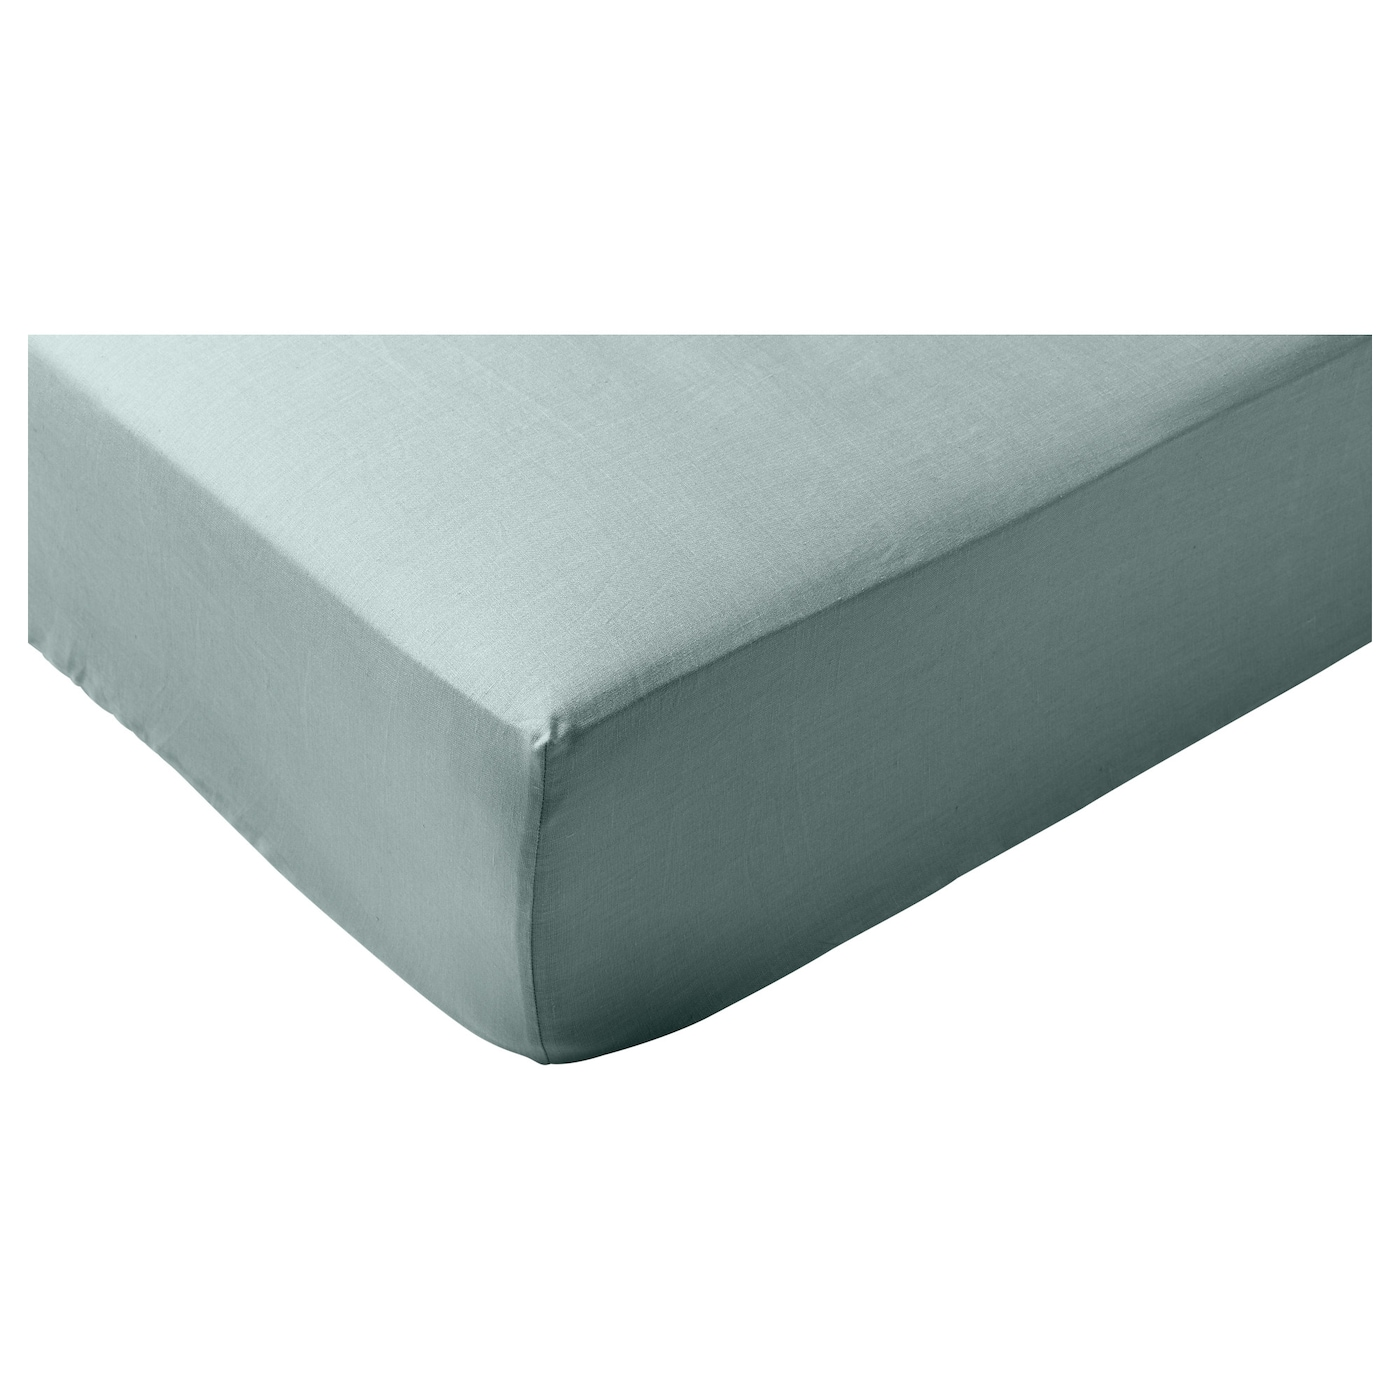 IKEA PUDERVIVA fitted sheet